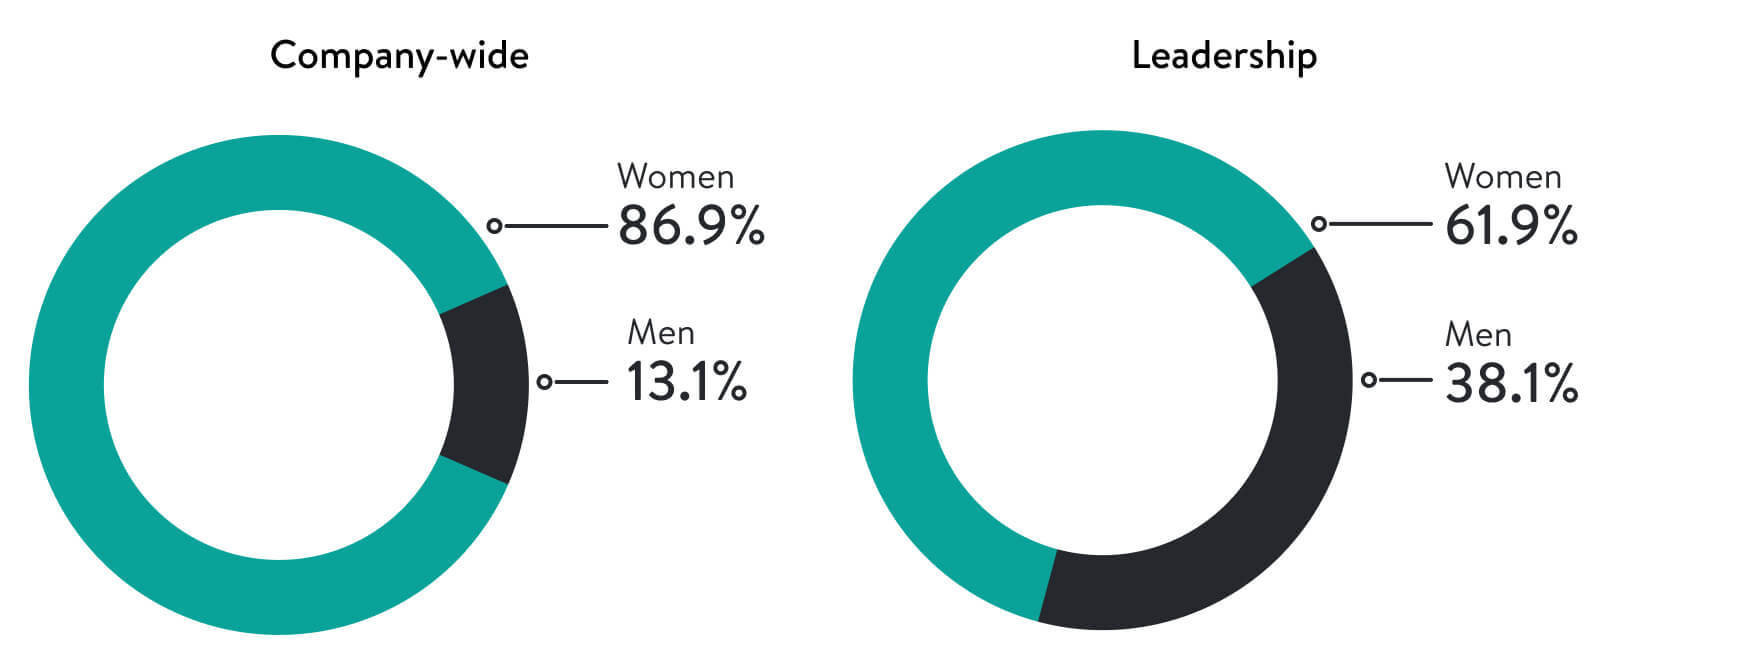 Two pie charts, one for company wide Gender Representation and one for Gender Representation in Leadership.